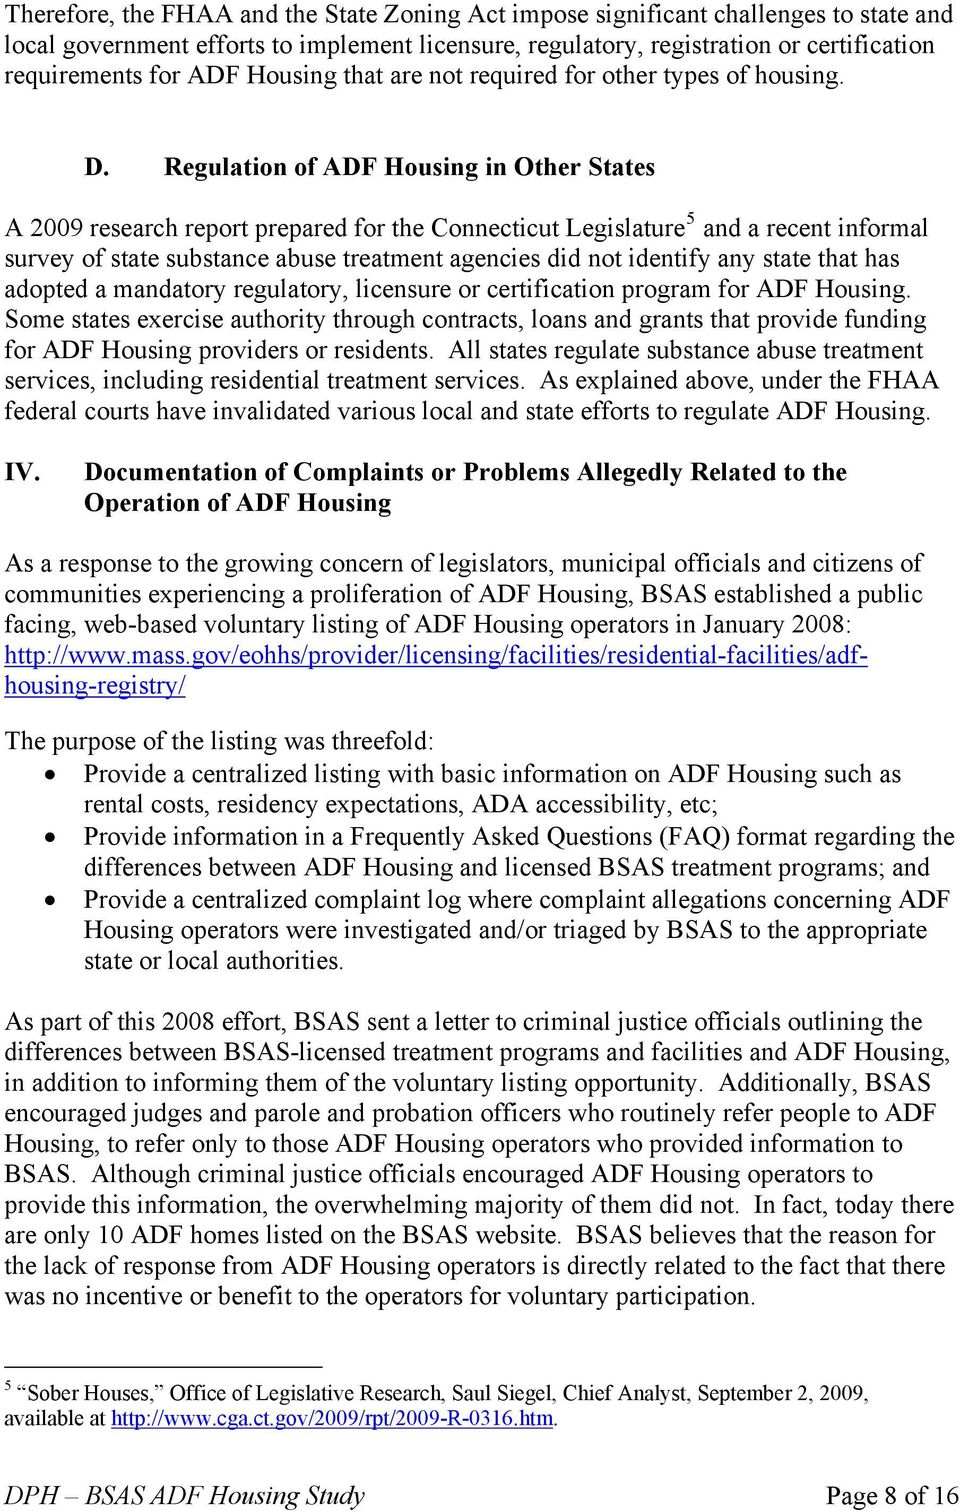 Regulation of ADF Housing in Other States A 2009 research report prepared for the Connecticut Legislature 5 and a recent informal survey of state substance abuse treatment agencies did not identify